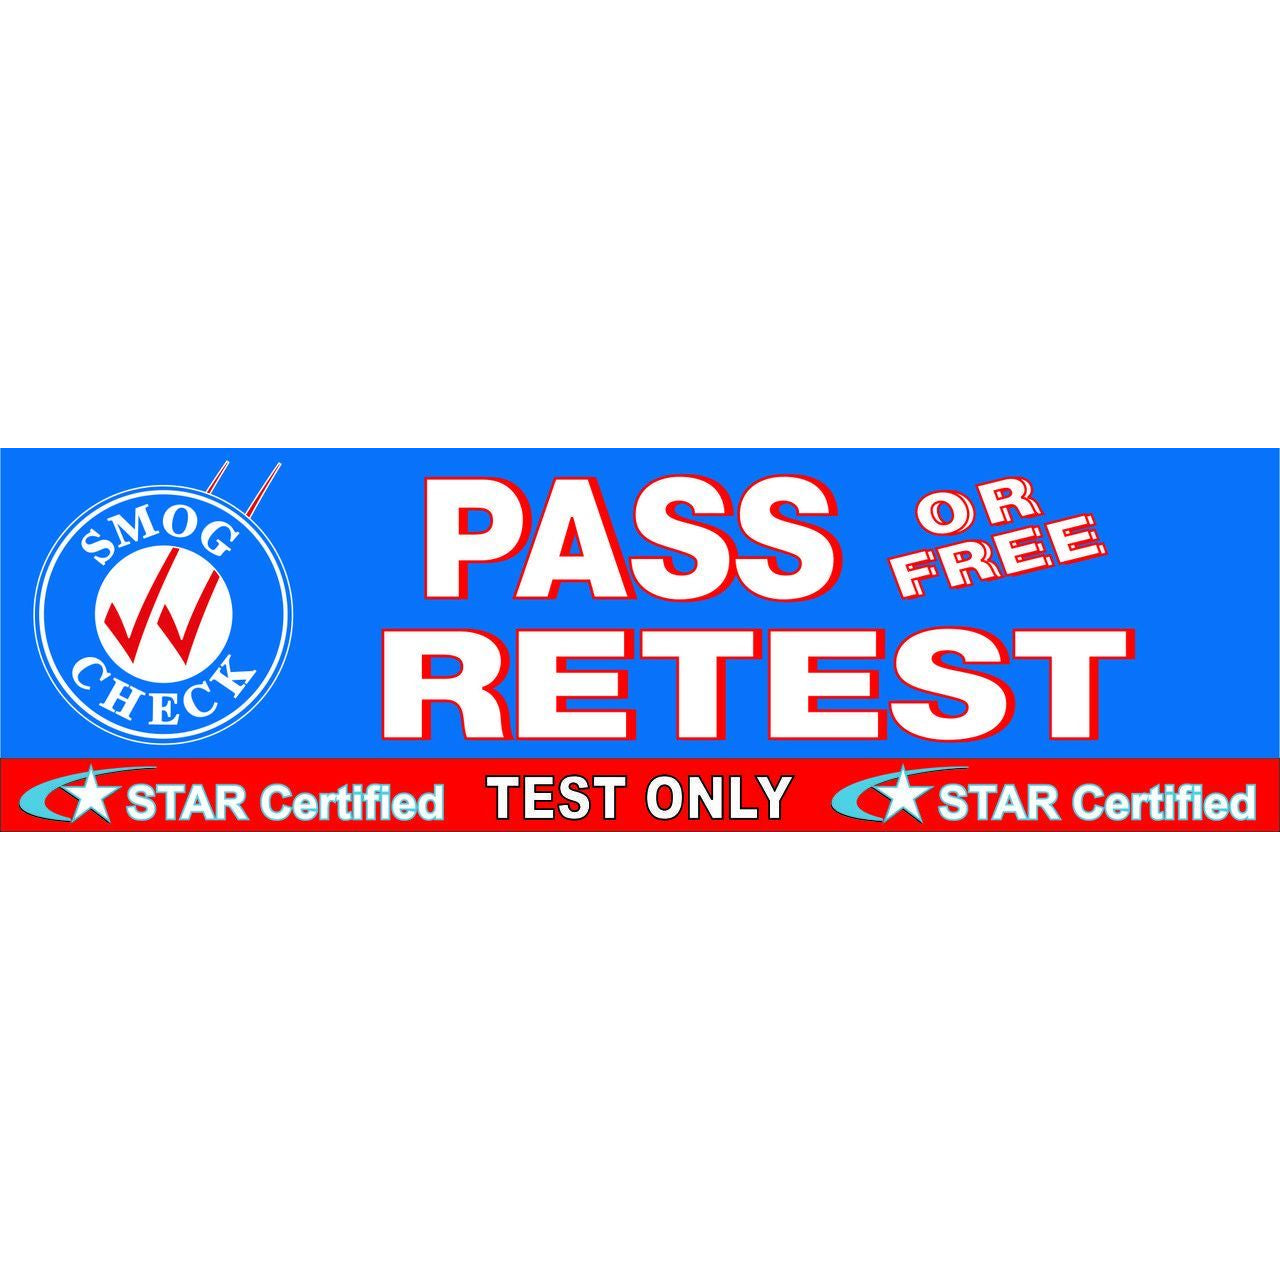 STAR CERTIFIED TEST ONLY PASS / FREE RETEST BANNER  SB942